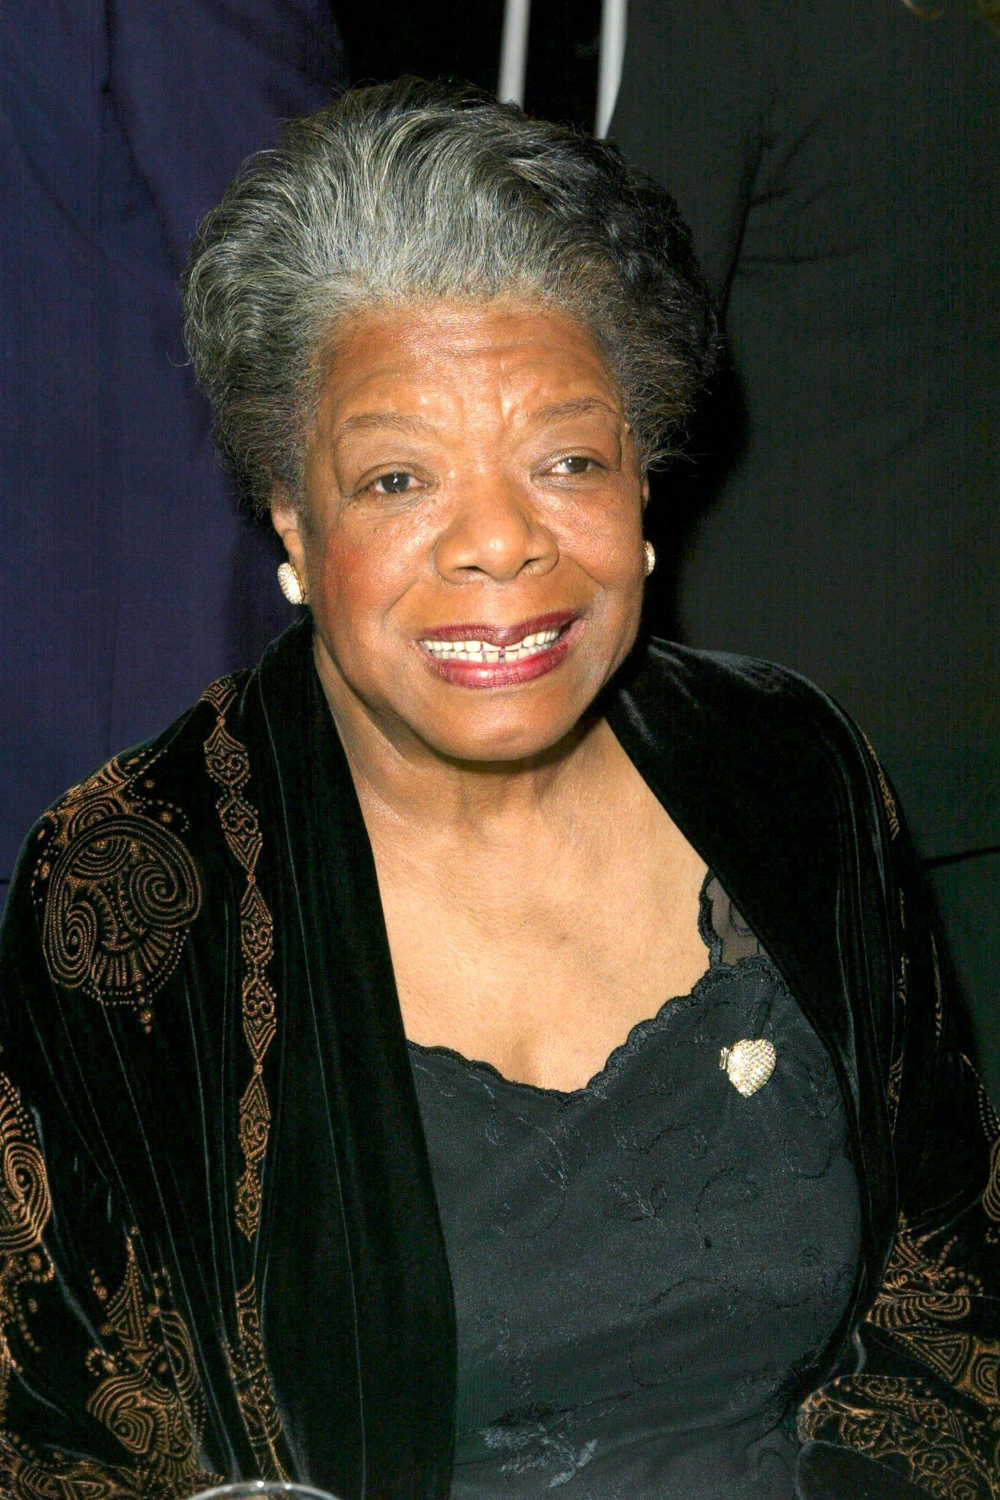 Maya Angelou: An Extraordinarily Wise Woman